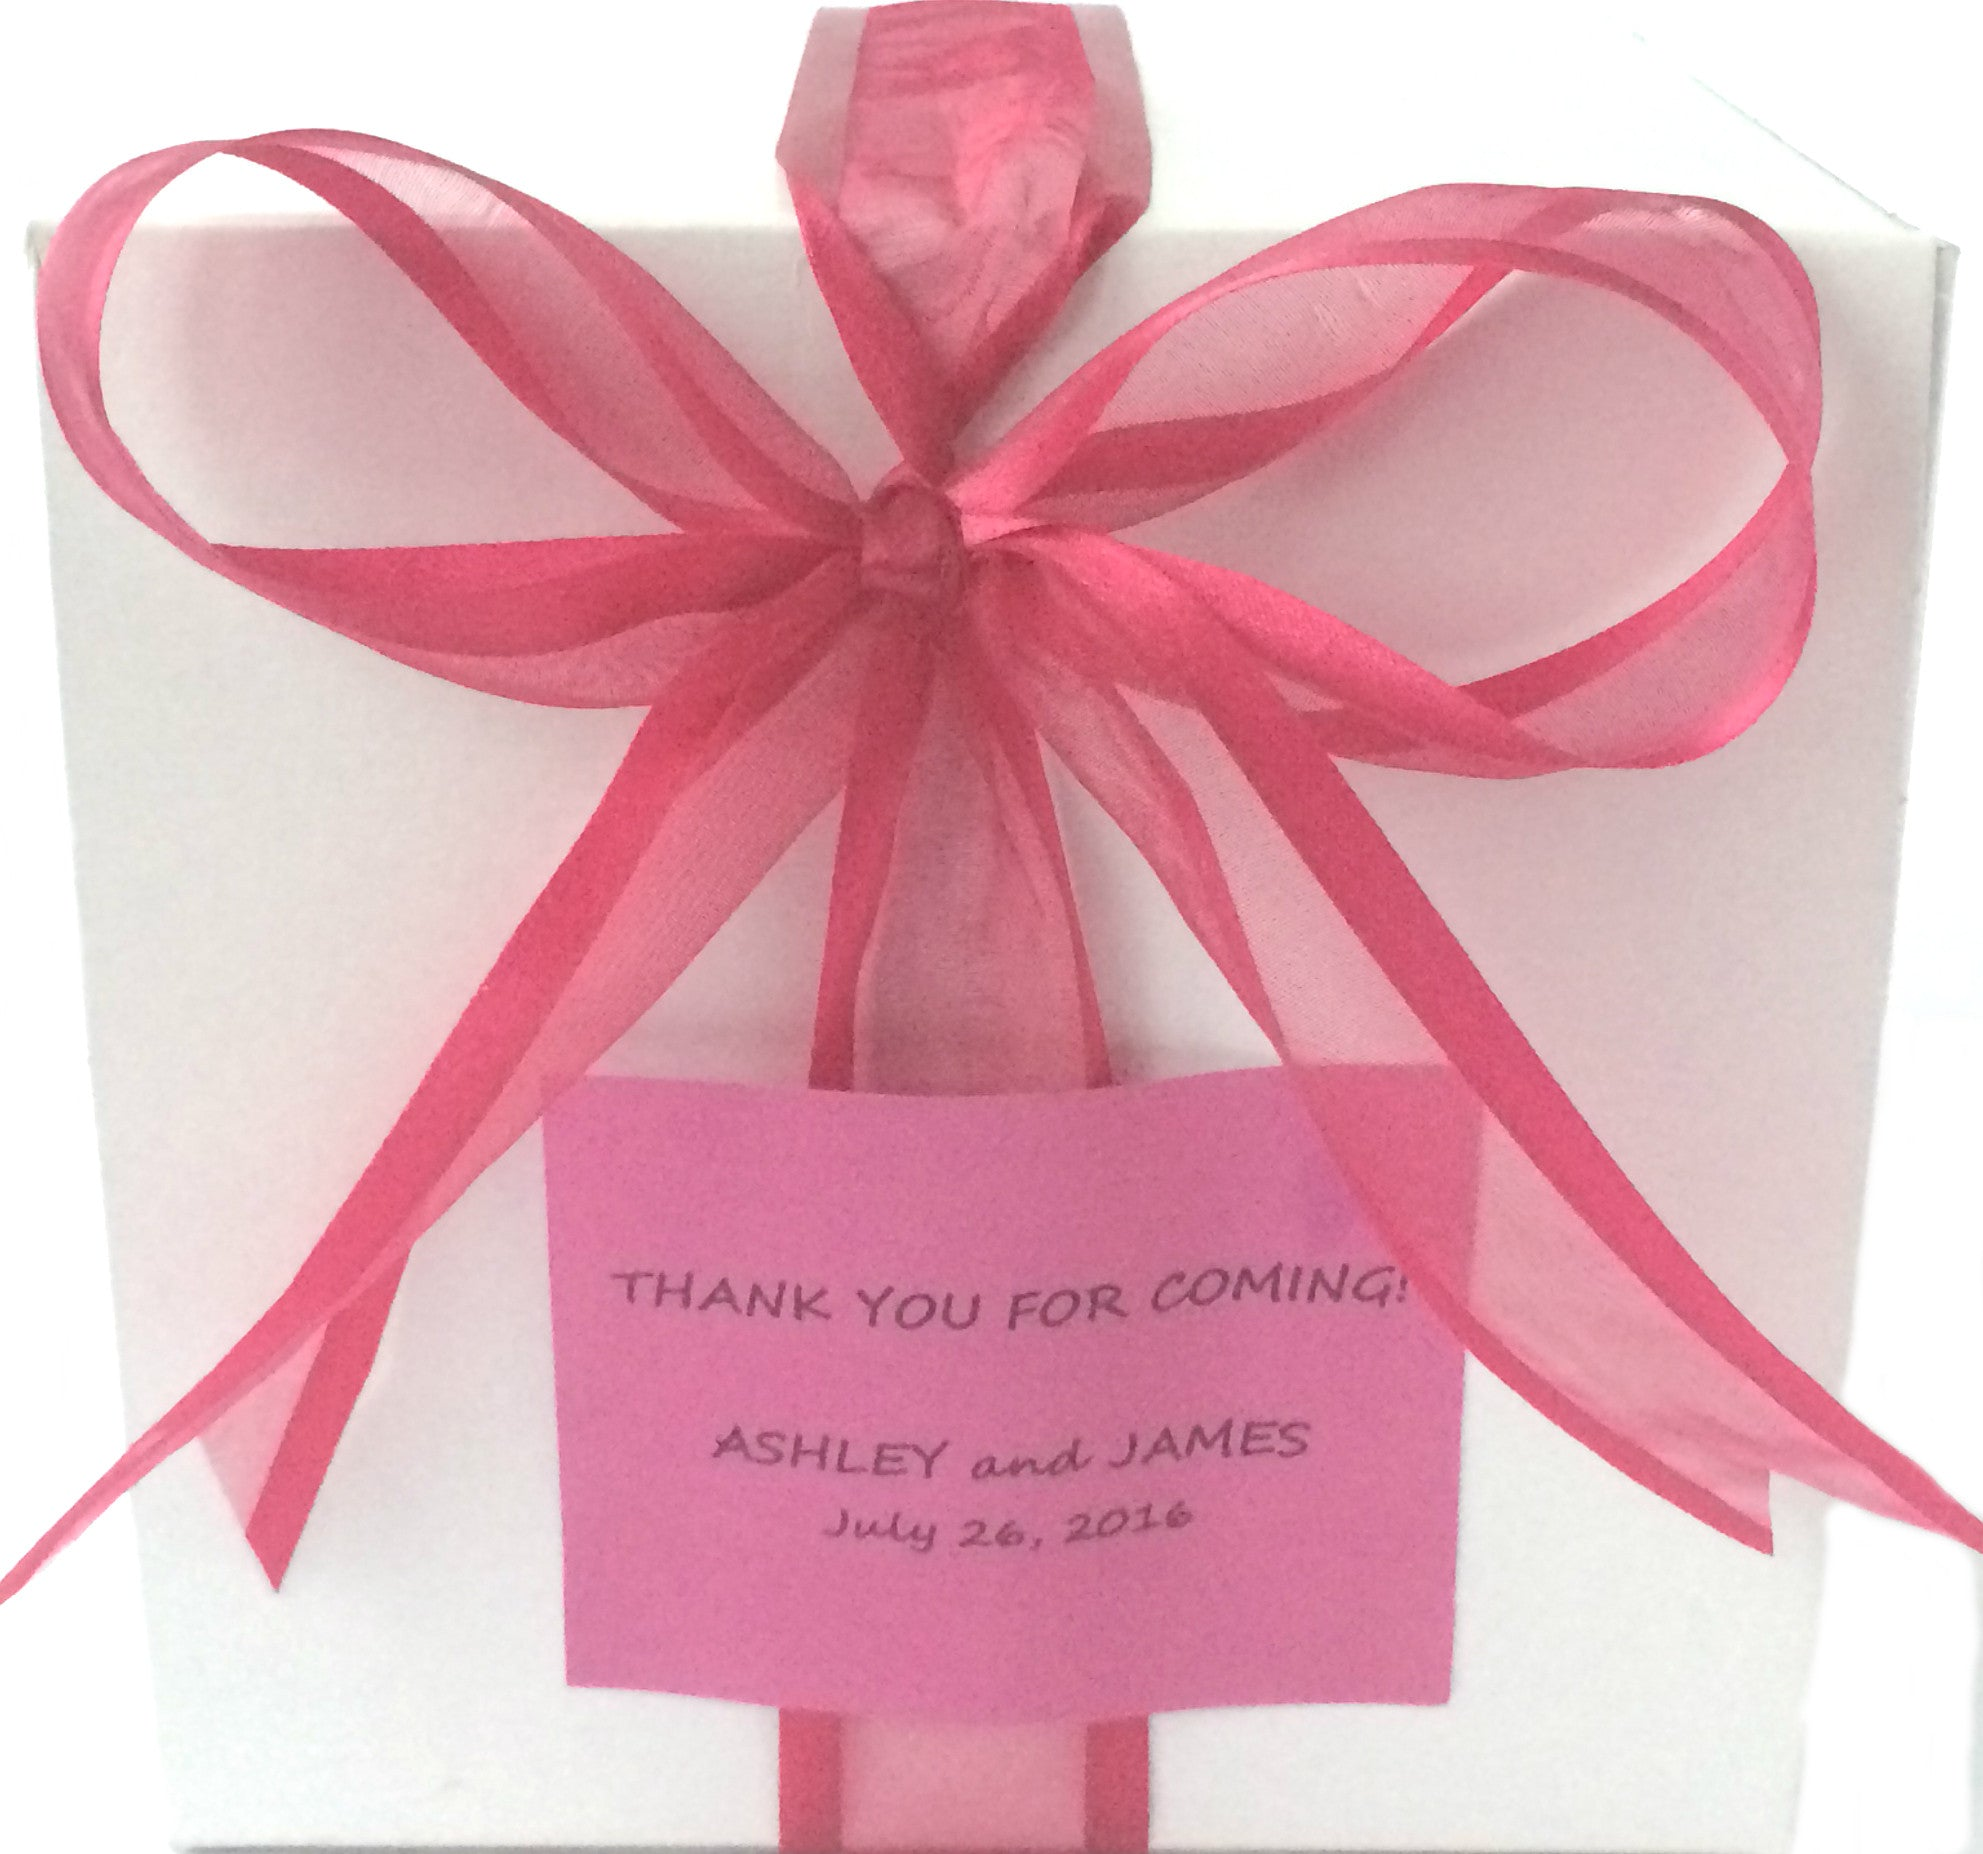 MPS Guilt-Free Beauty Welcome Box (White/Tuck Top) - My Party Saver ...